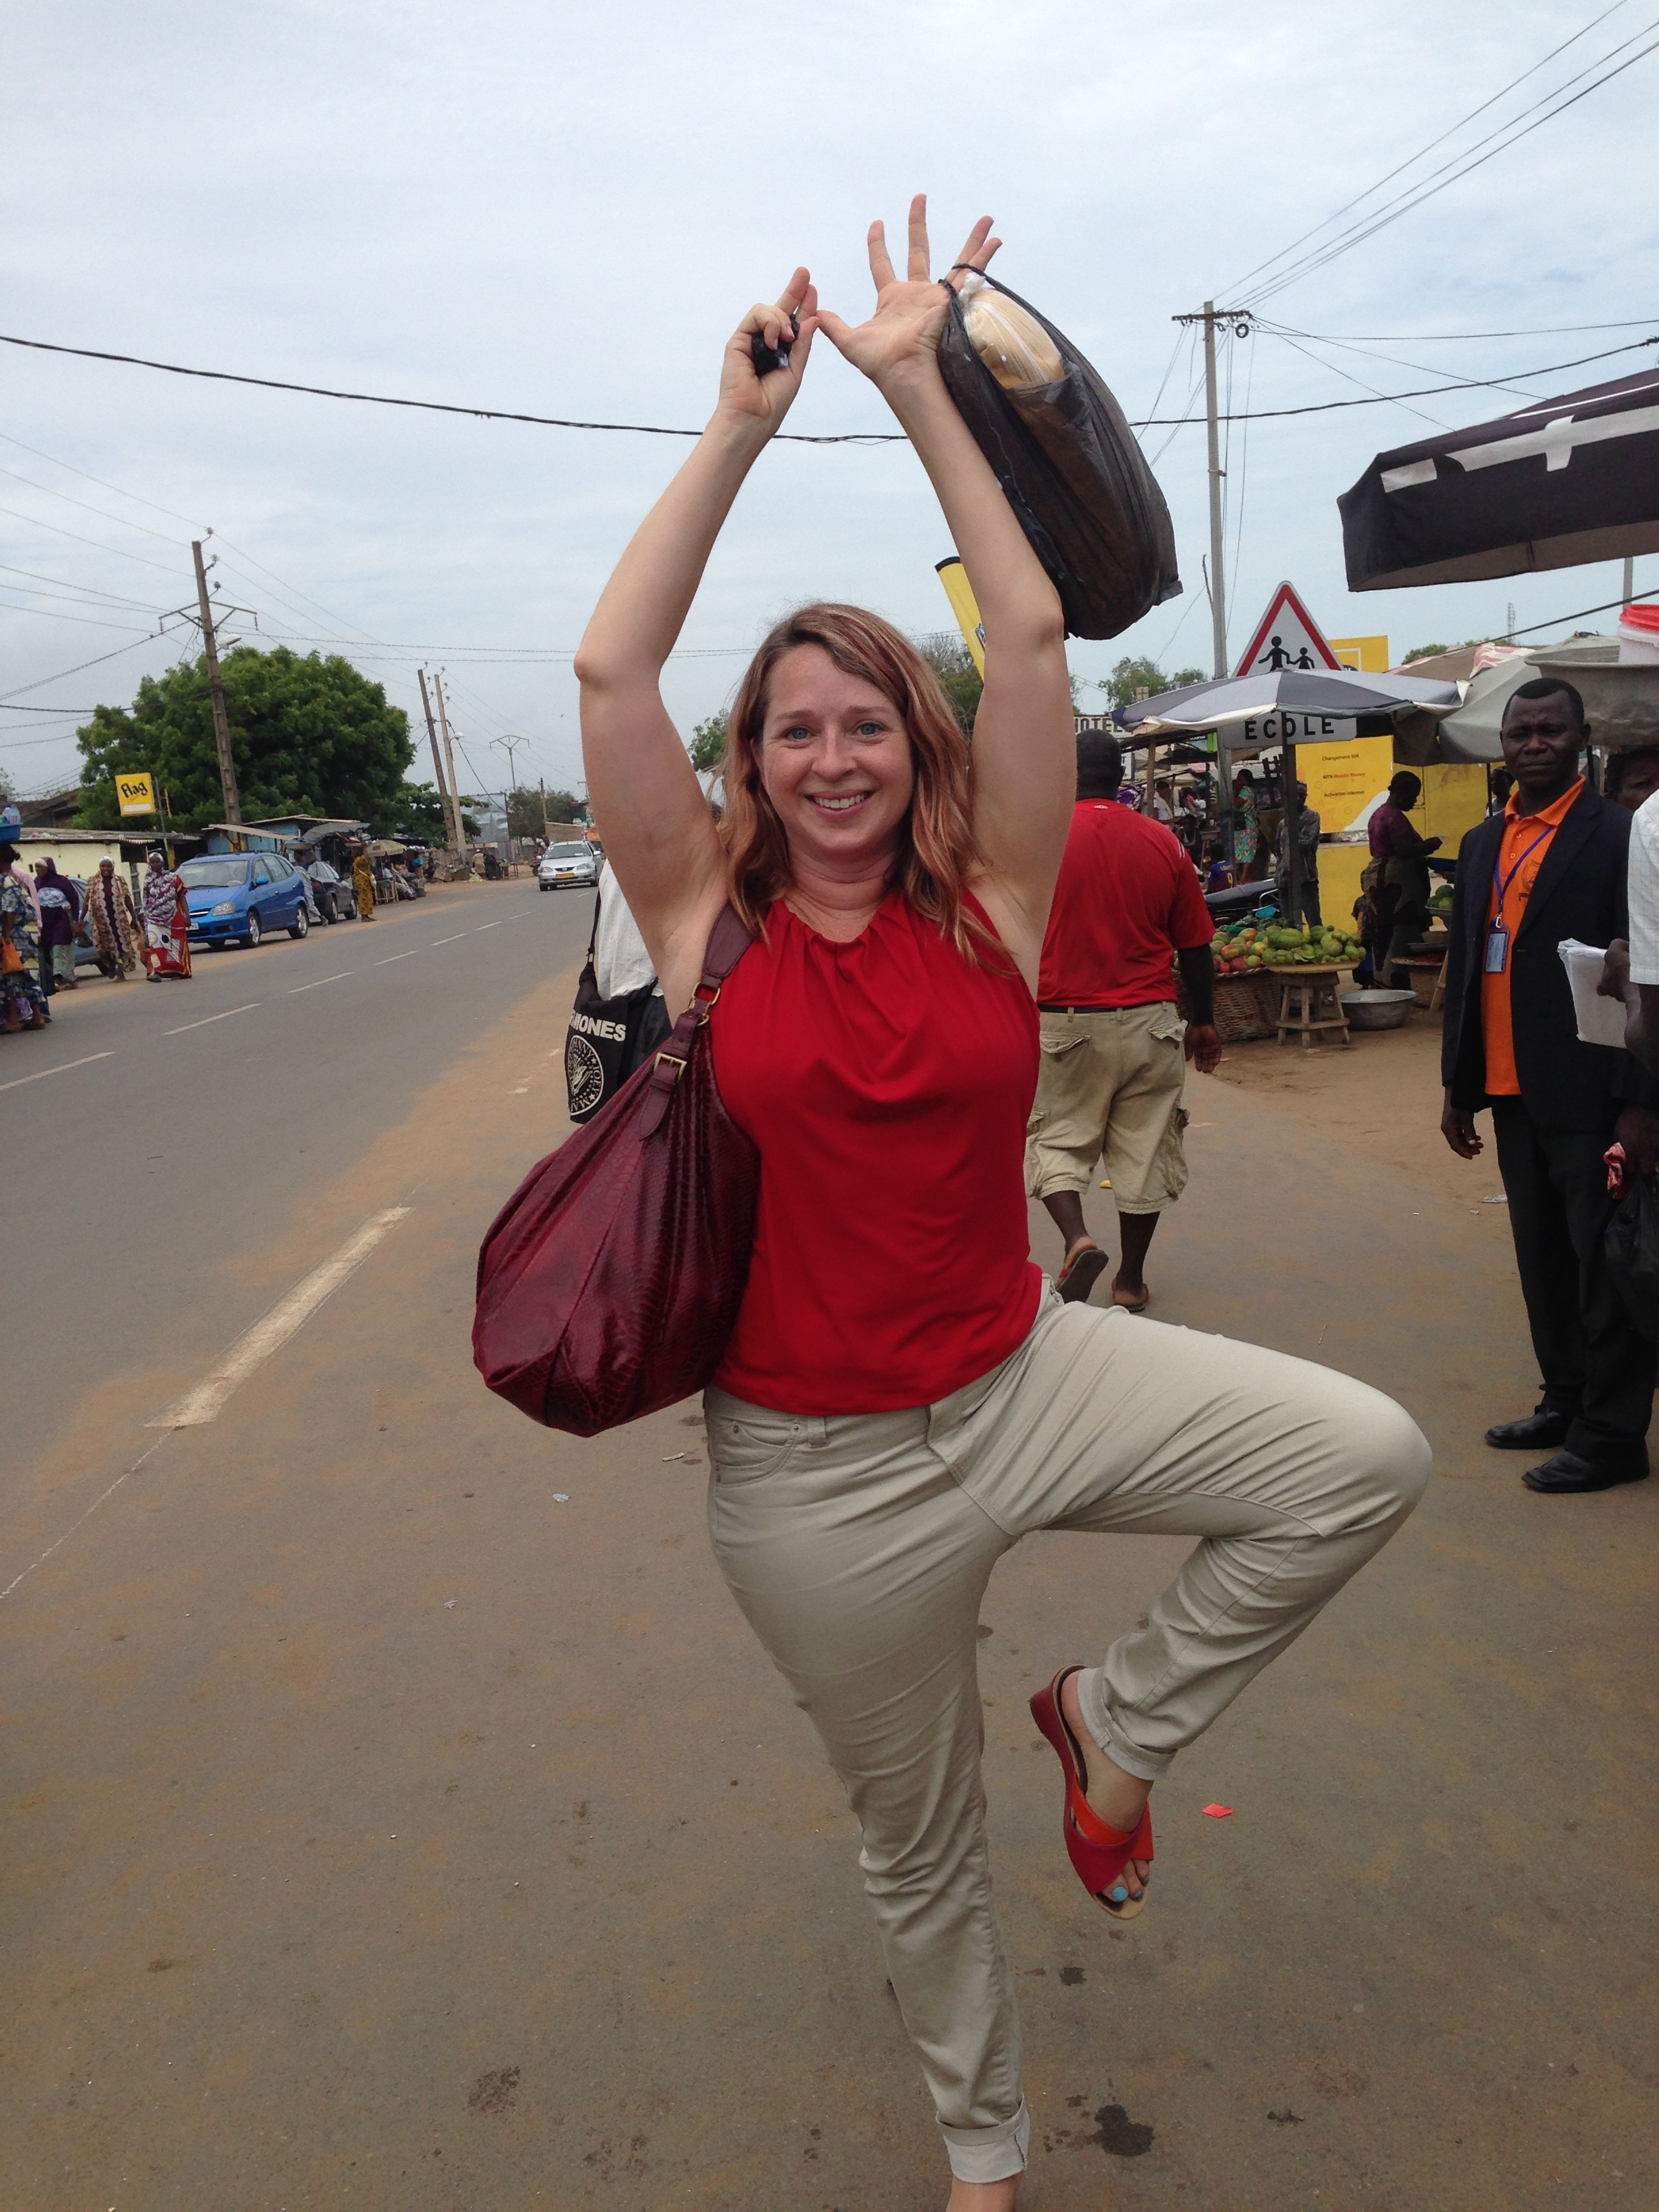 Me doing a little bit of tree pose at the Togo/Benin border back in 2016. Image captured by my friendly Nigerian seat mate on the bus.